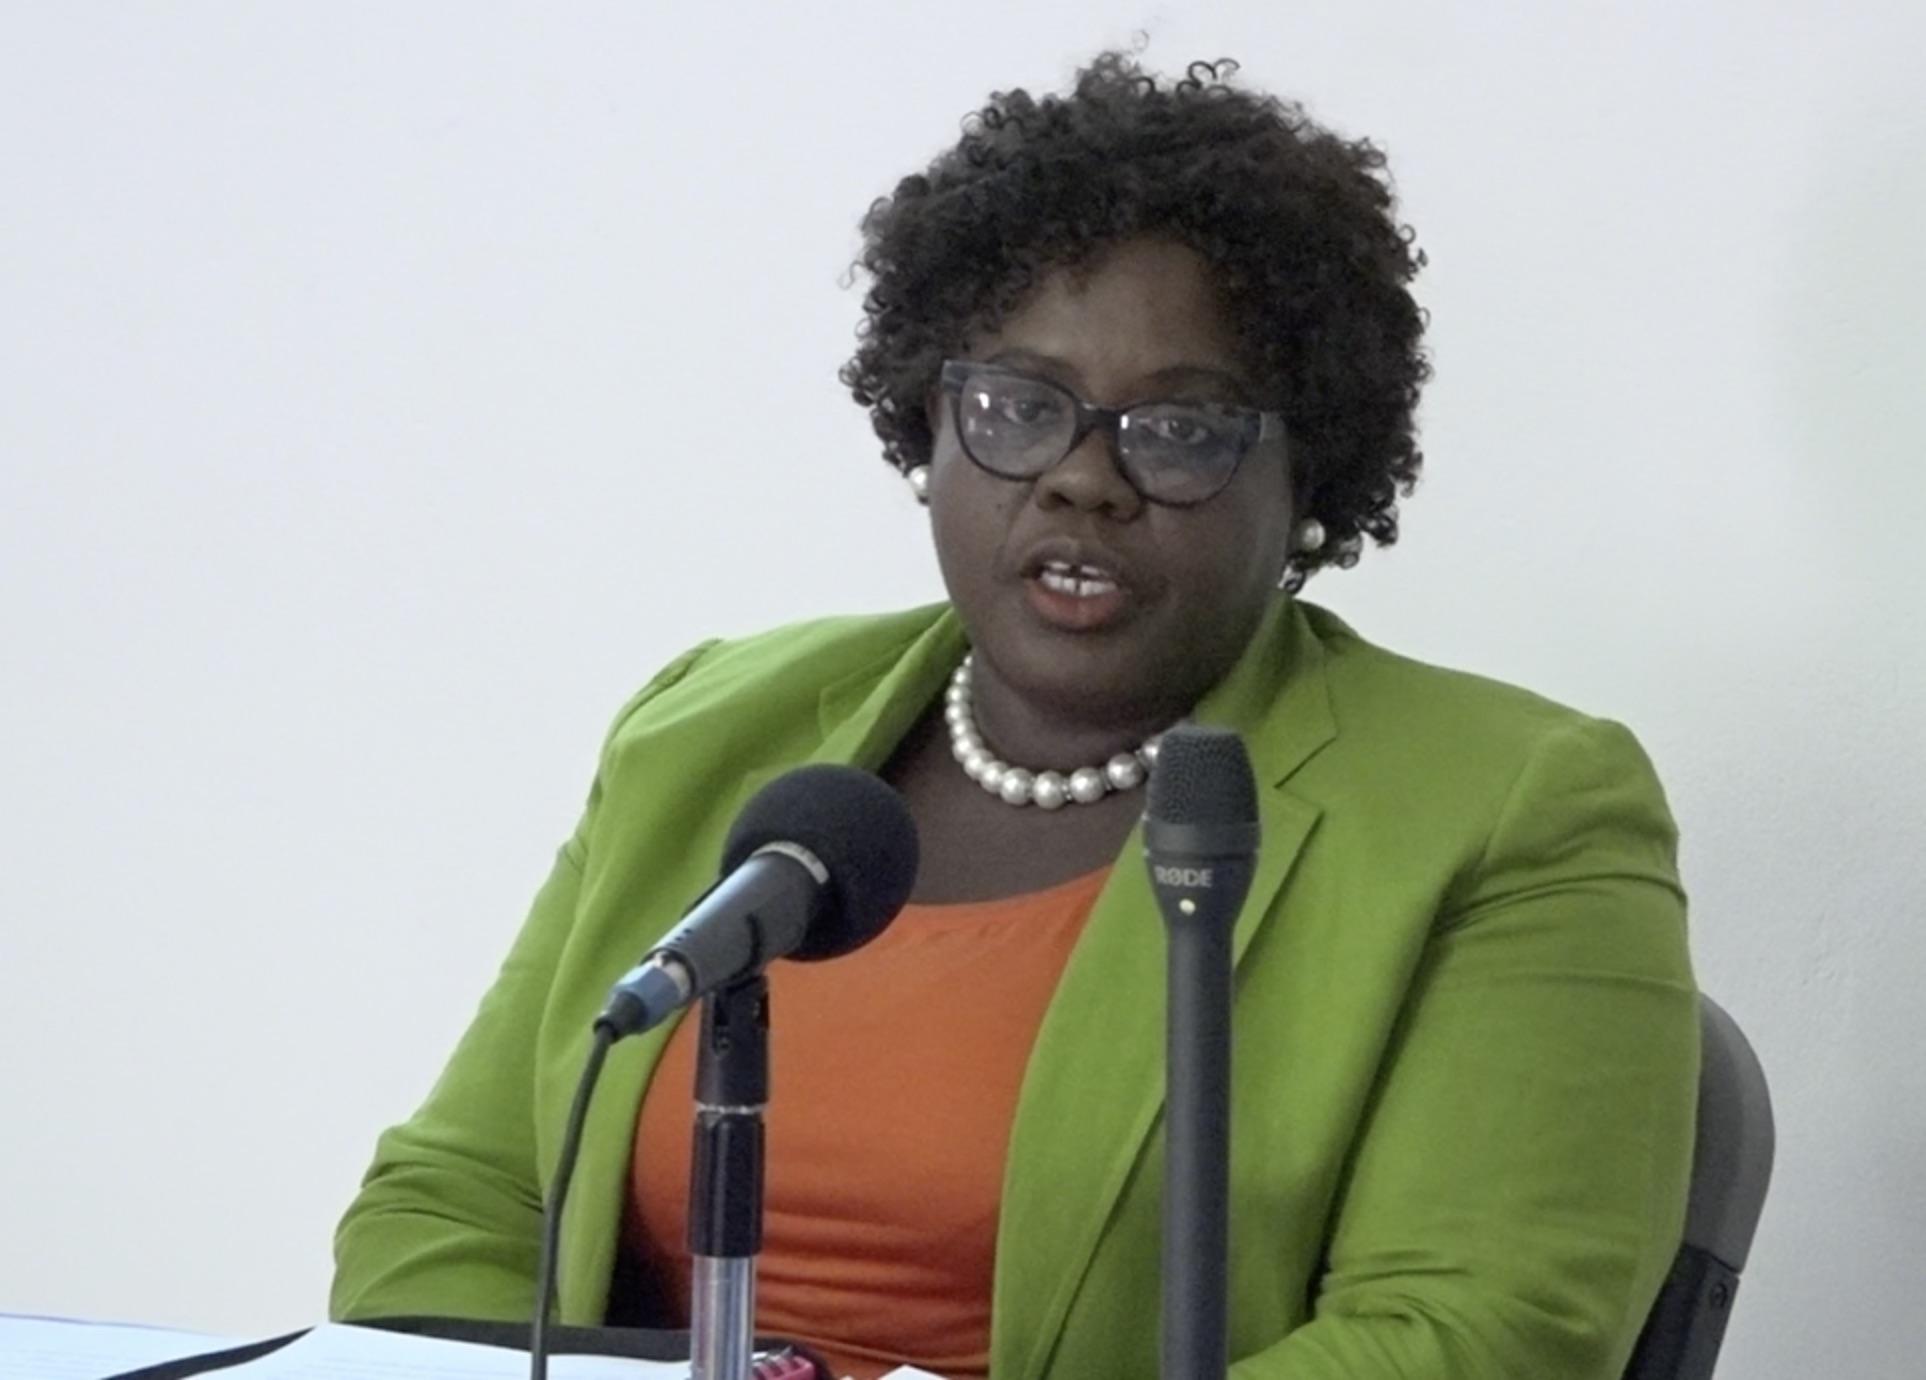 Hon. Hazel Brandy Williams, Junior Minister responsible for Gender Affairs in the Nevis Island Administration delivering remarks at the closing ceremony for a Business Boot Camp hosted by the Gender Affairs Division on August 12, 2020, at the GMBC Building in Charlestown